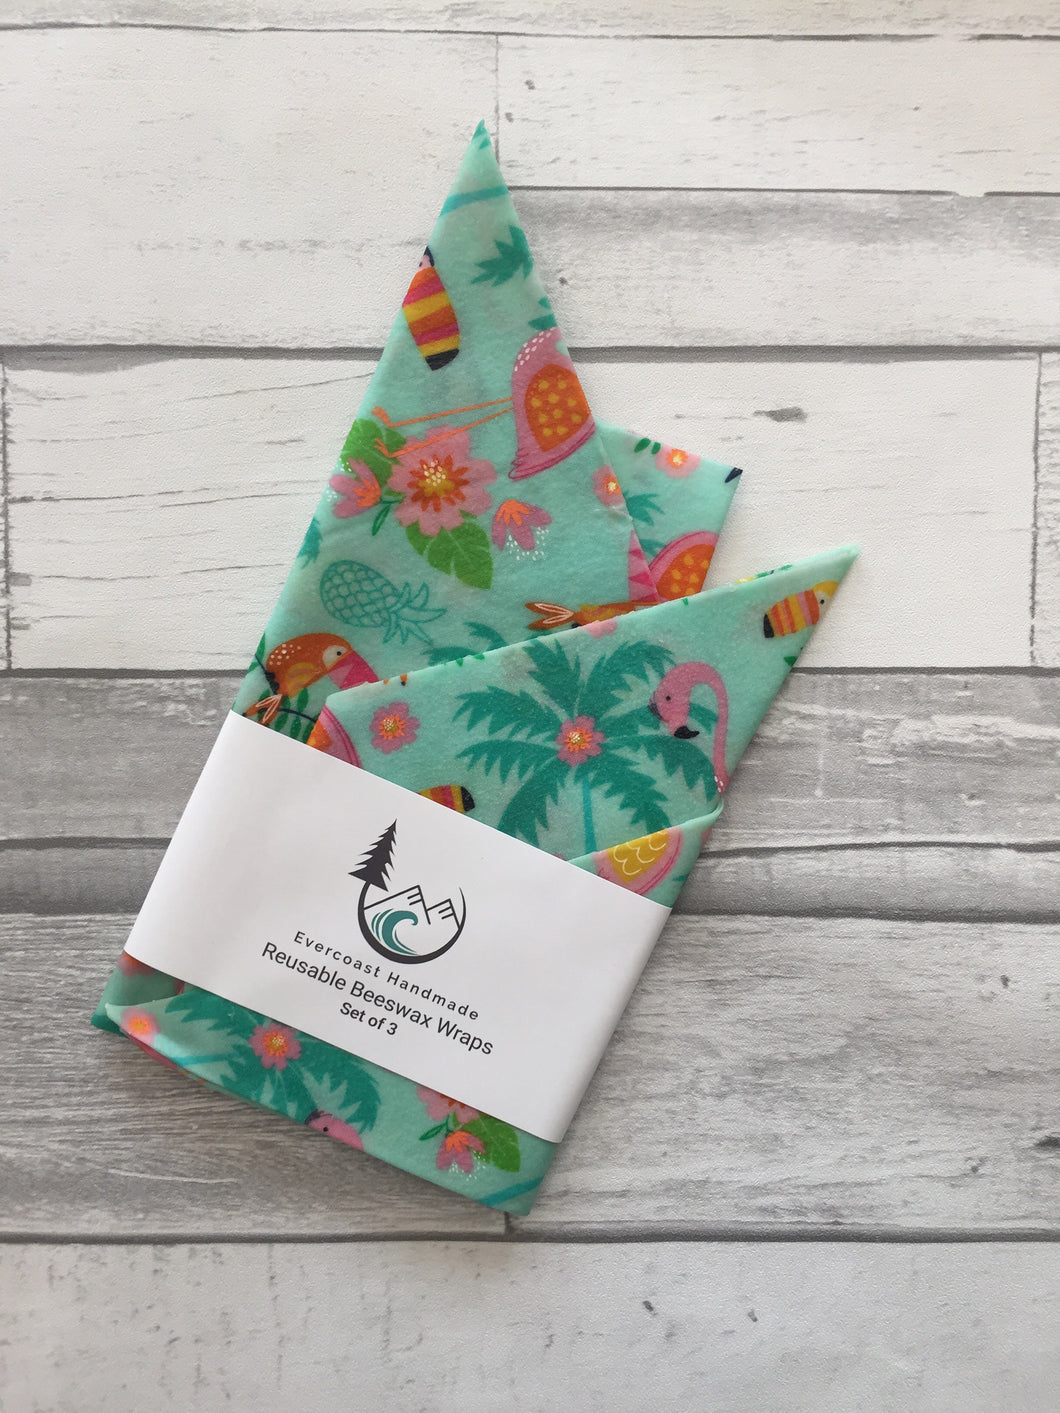 Tropical Birds Beeswax Wraps – Classic Set of 3